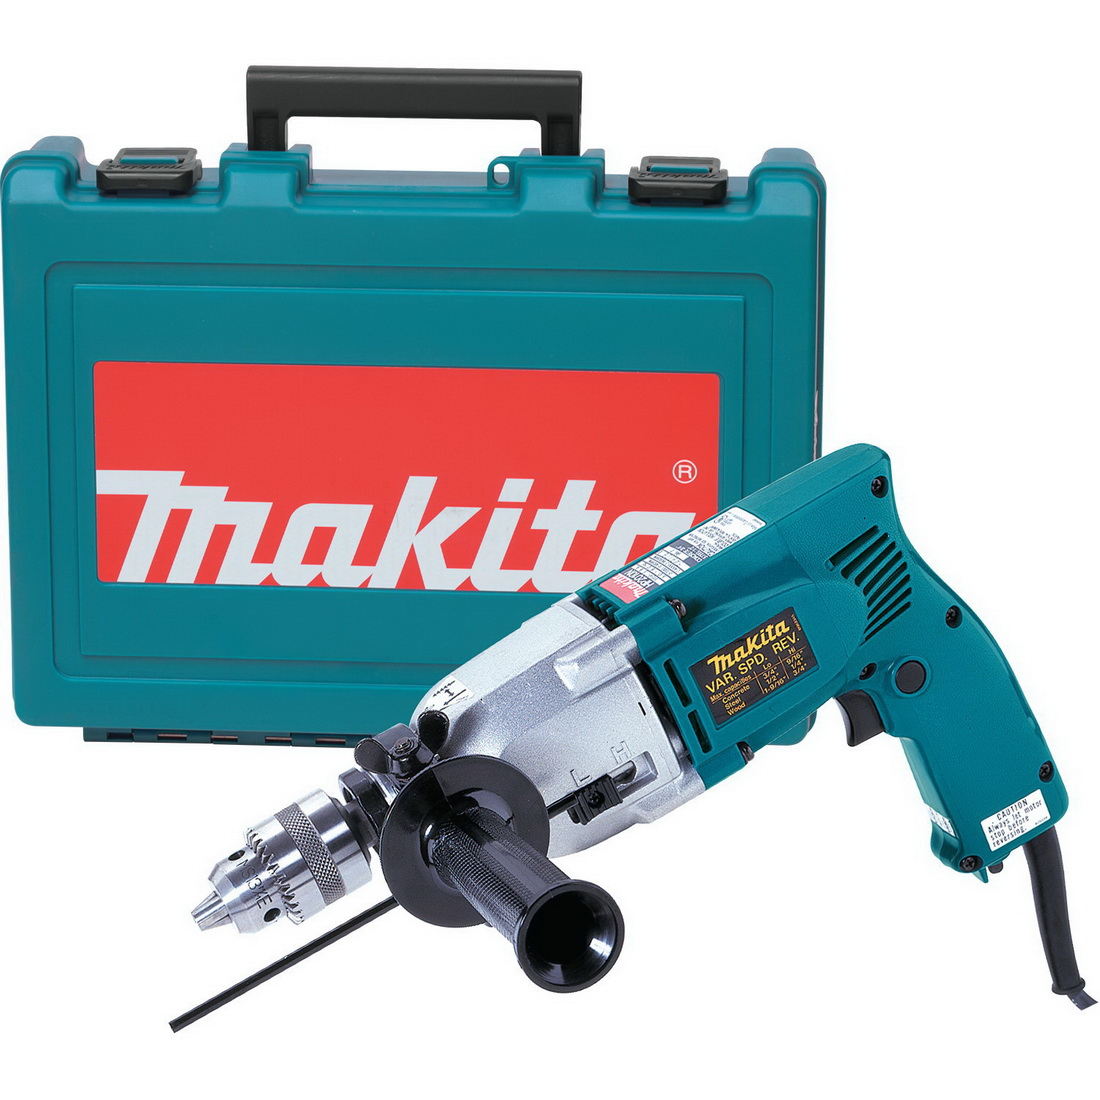 1/2-3/4 Inch Corded Hammer Drill With Led Light